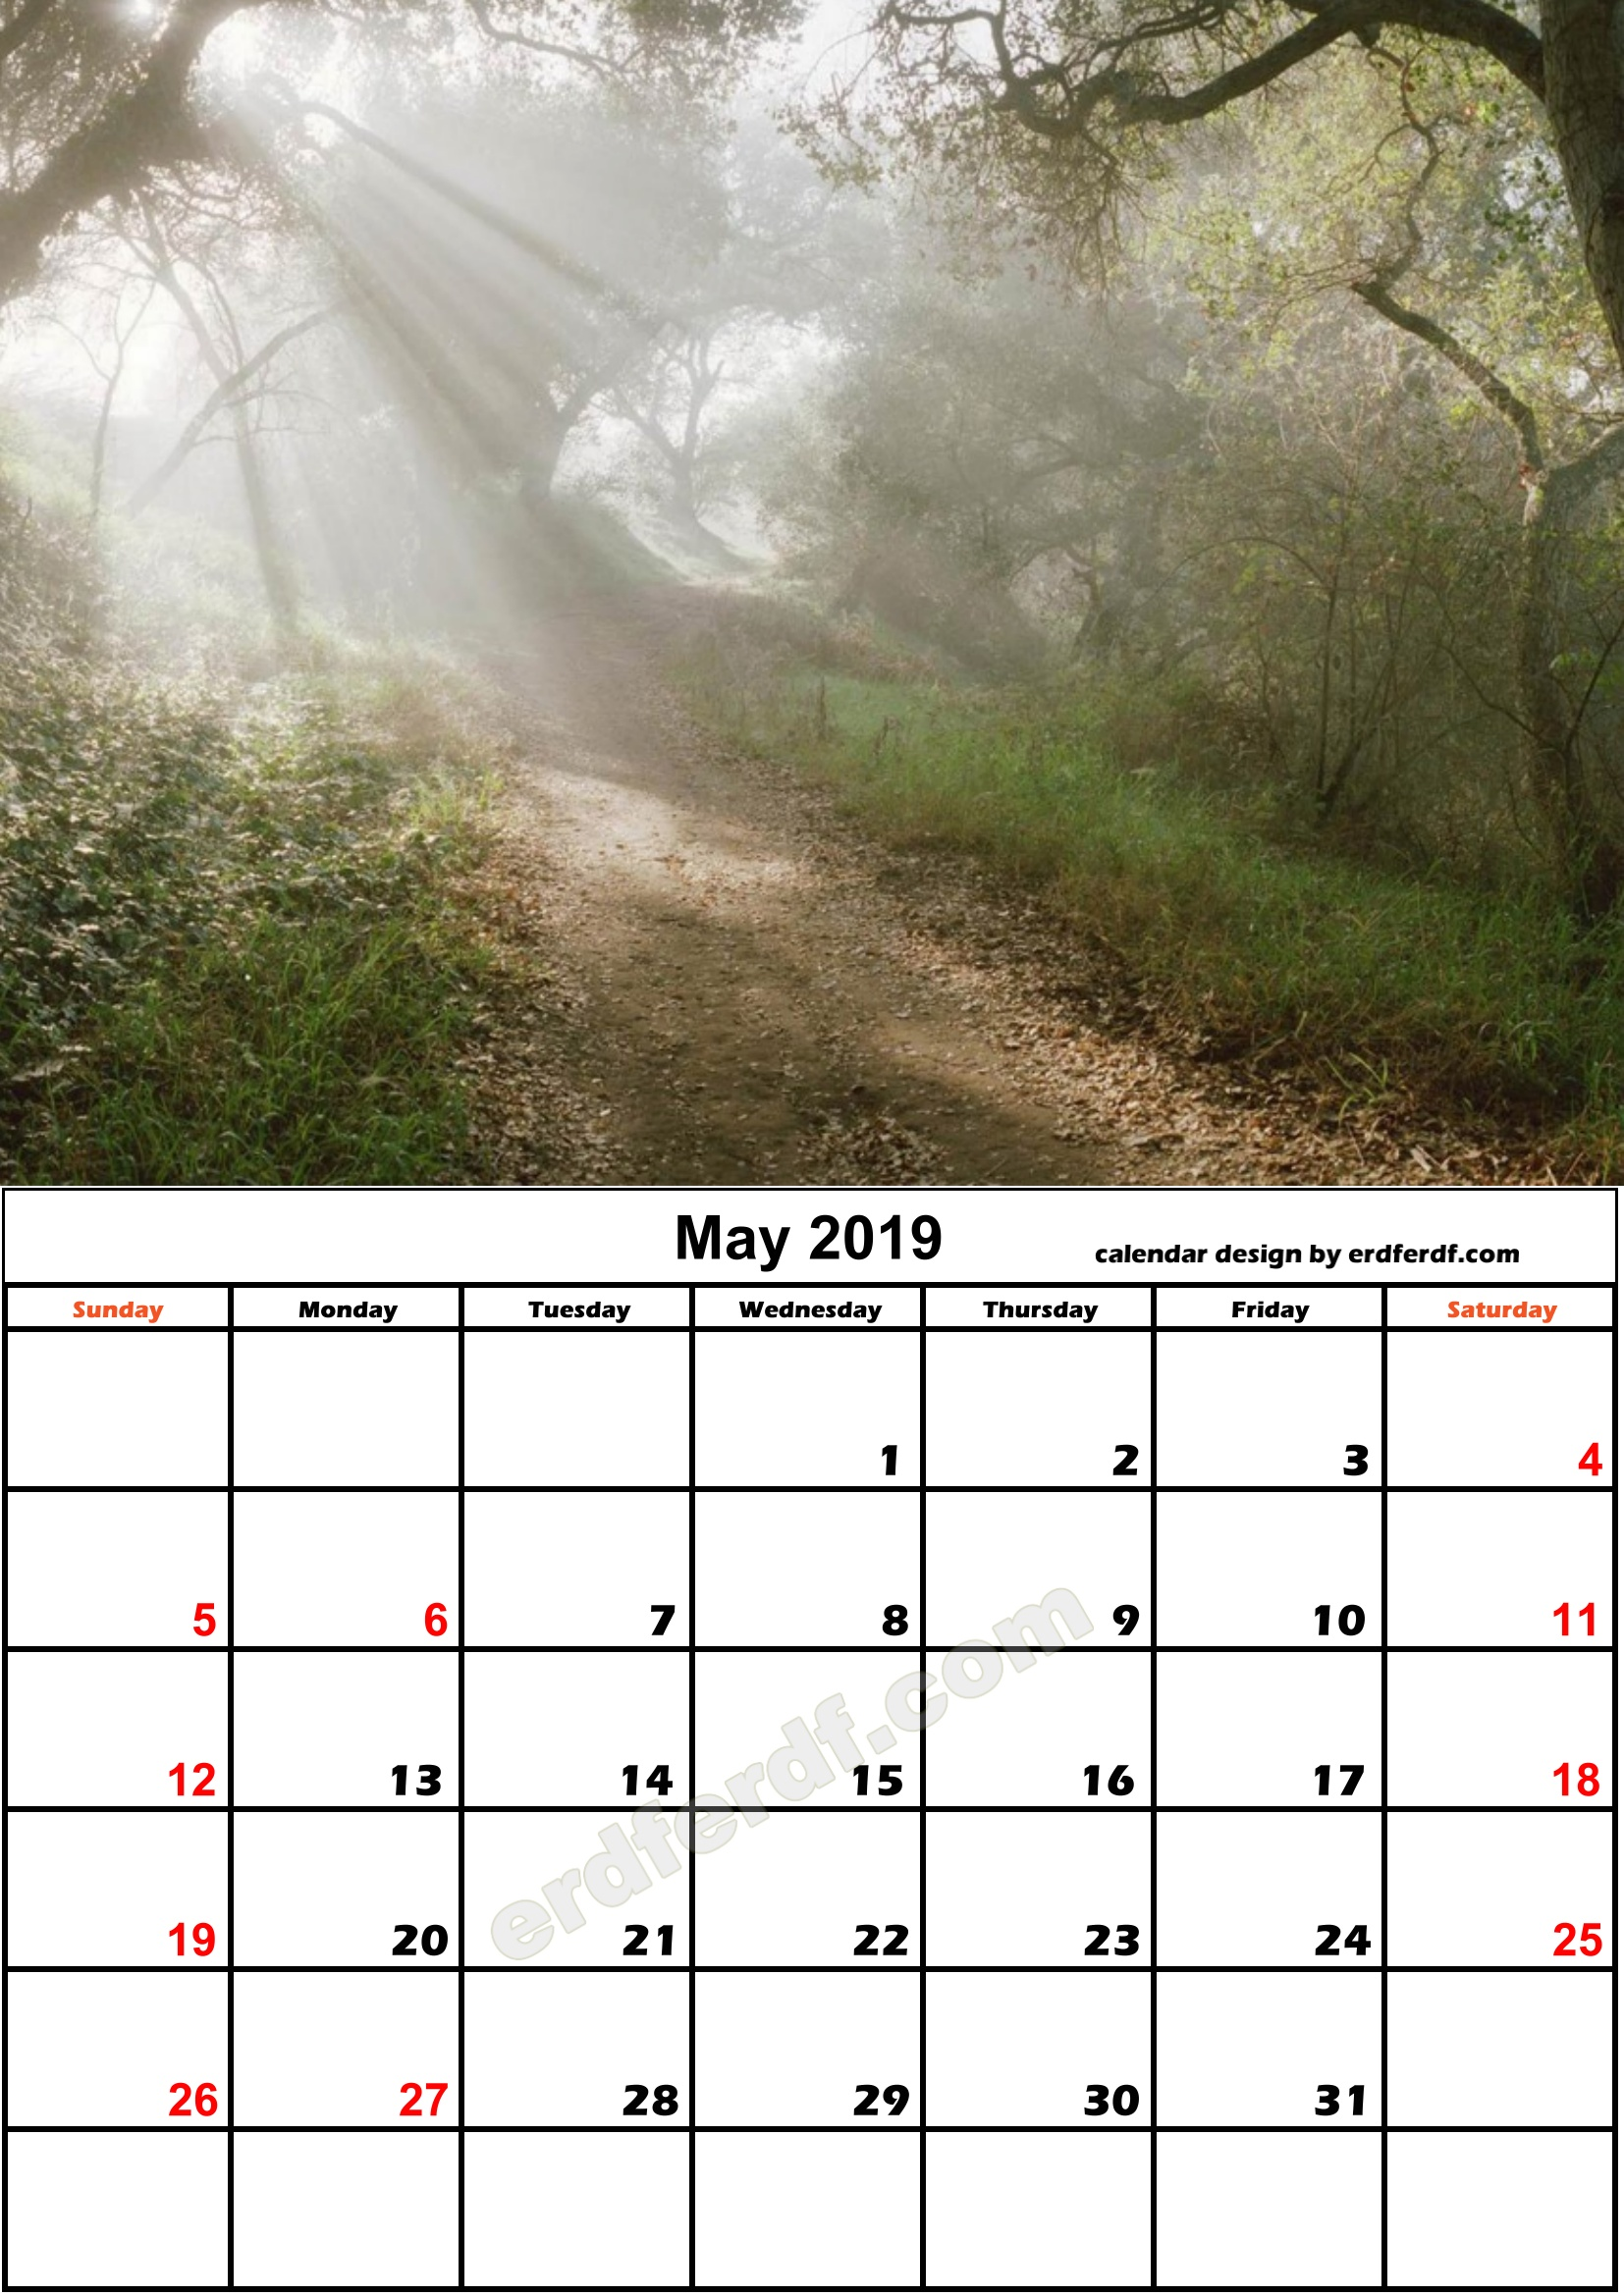 5 May Nature Calendar Monthly 2019 Free Download